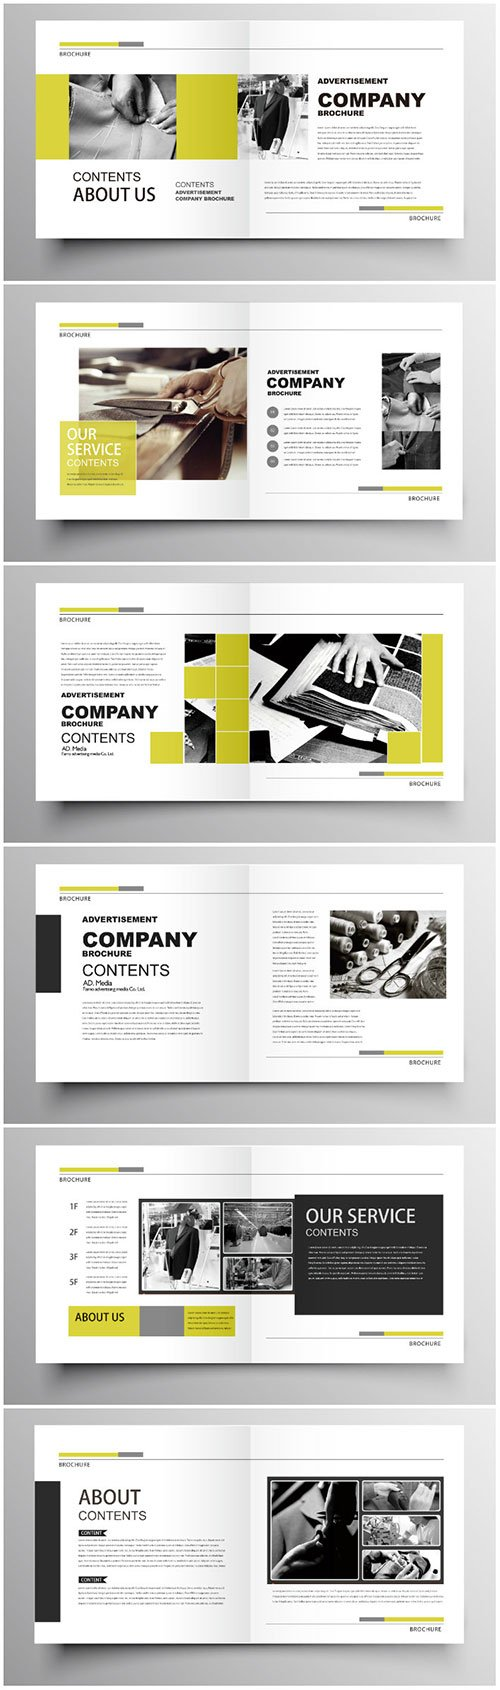 Brochure template vector layout design, corporate business annual report, magazine, flyer mockup # 189